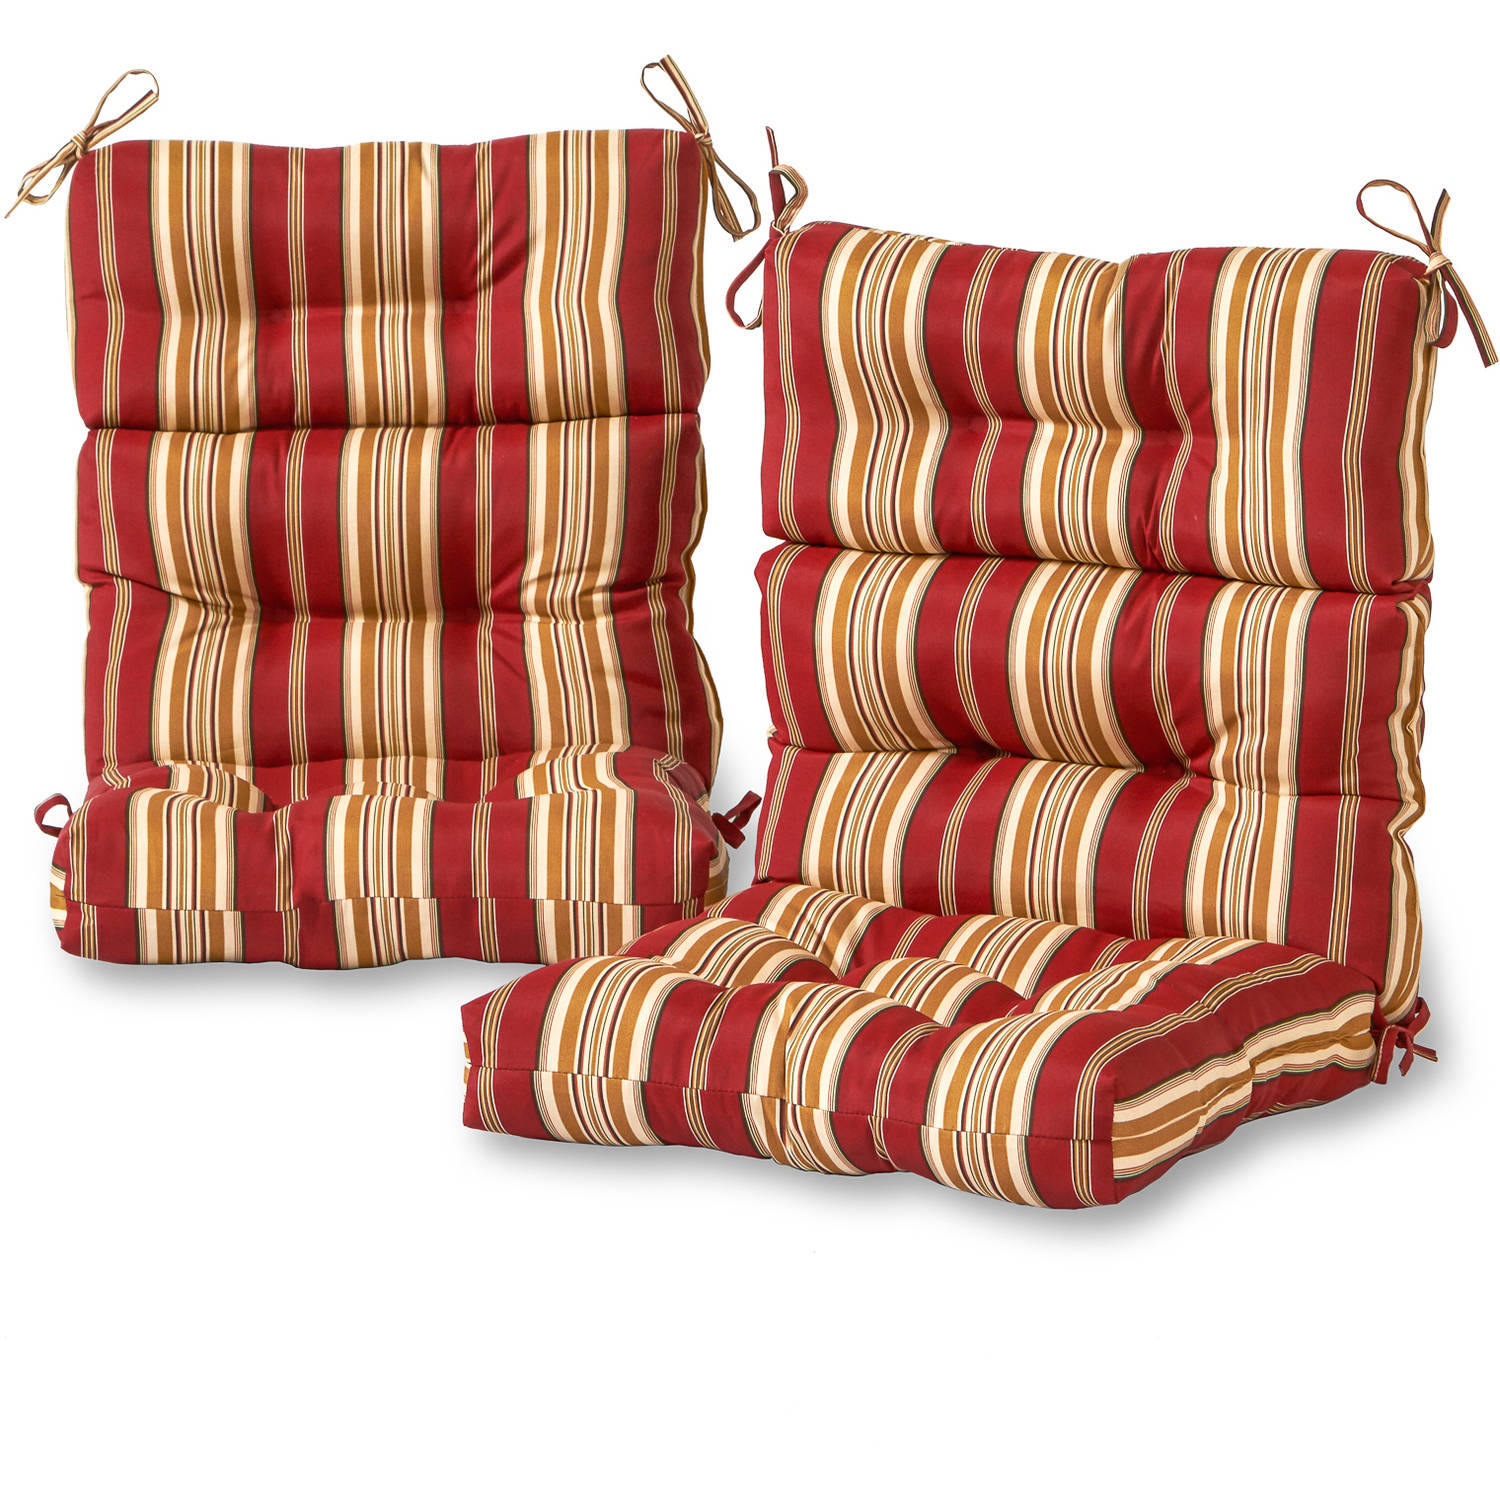 Greendale Home Fashions Roma Stripe Outdoor High Back Chair Cushion, Set of 2 by Greendale Home Fashions